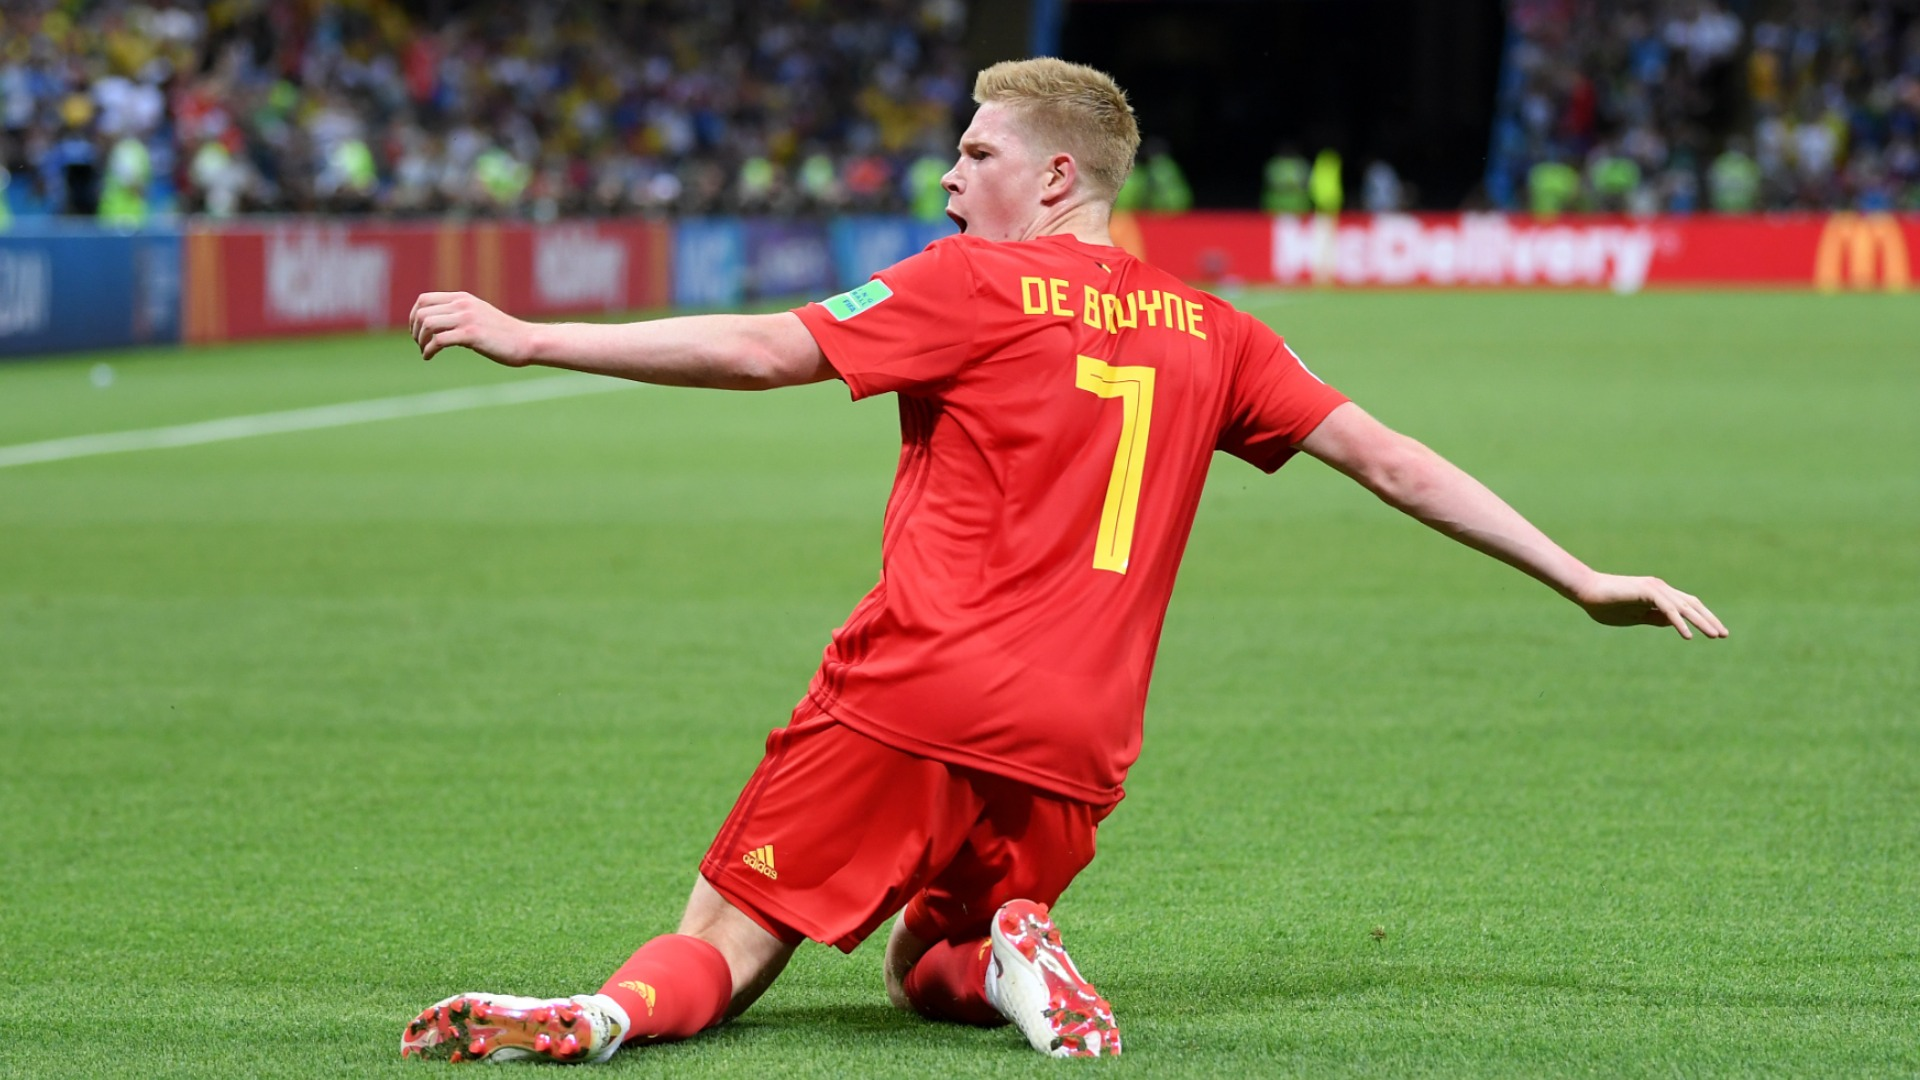 Belgium 6-1 Cyprus: De Bruyne leads latest Red Devils rout